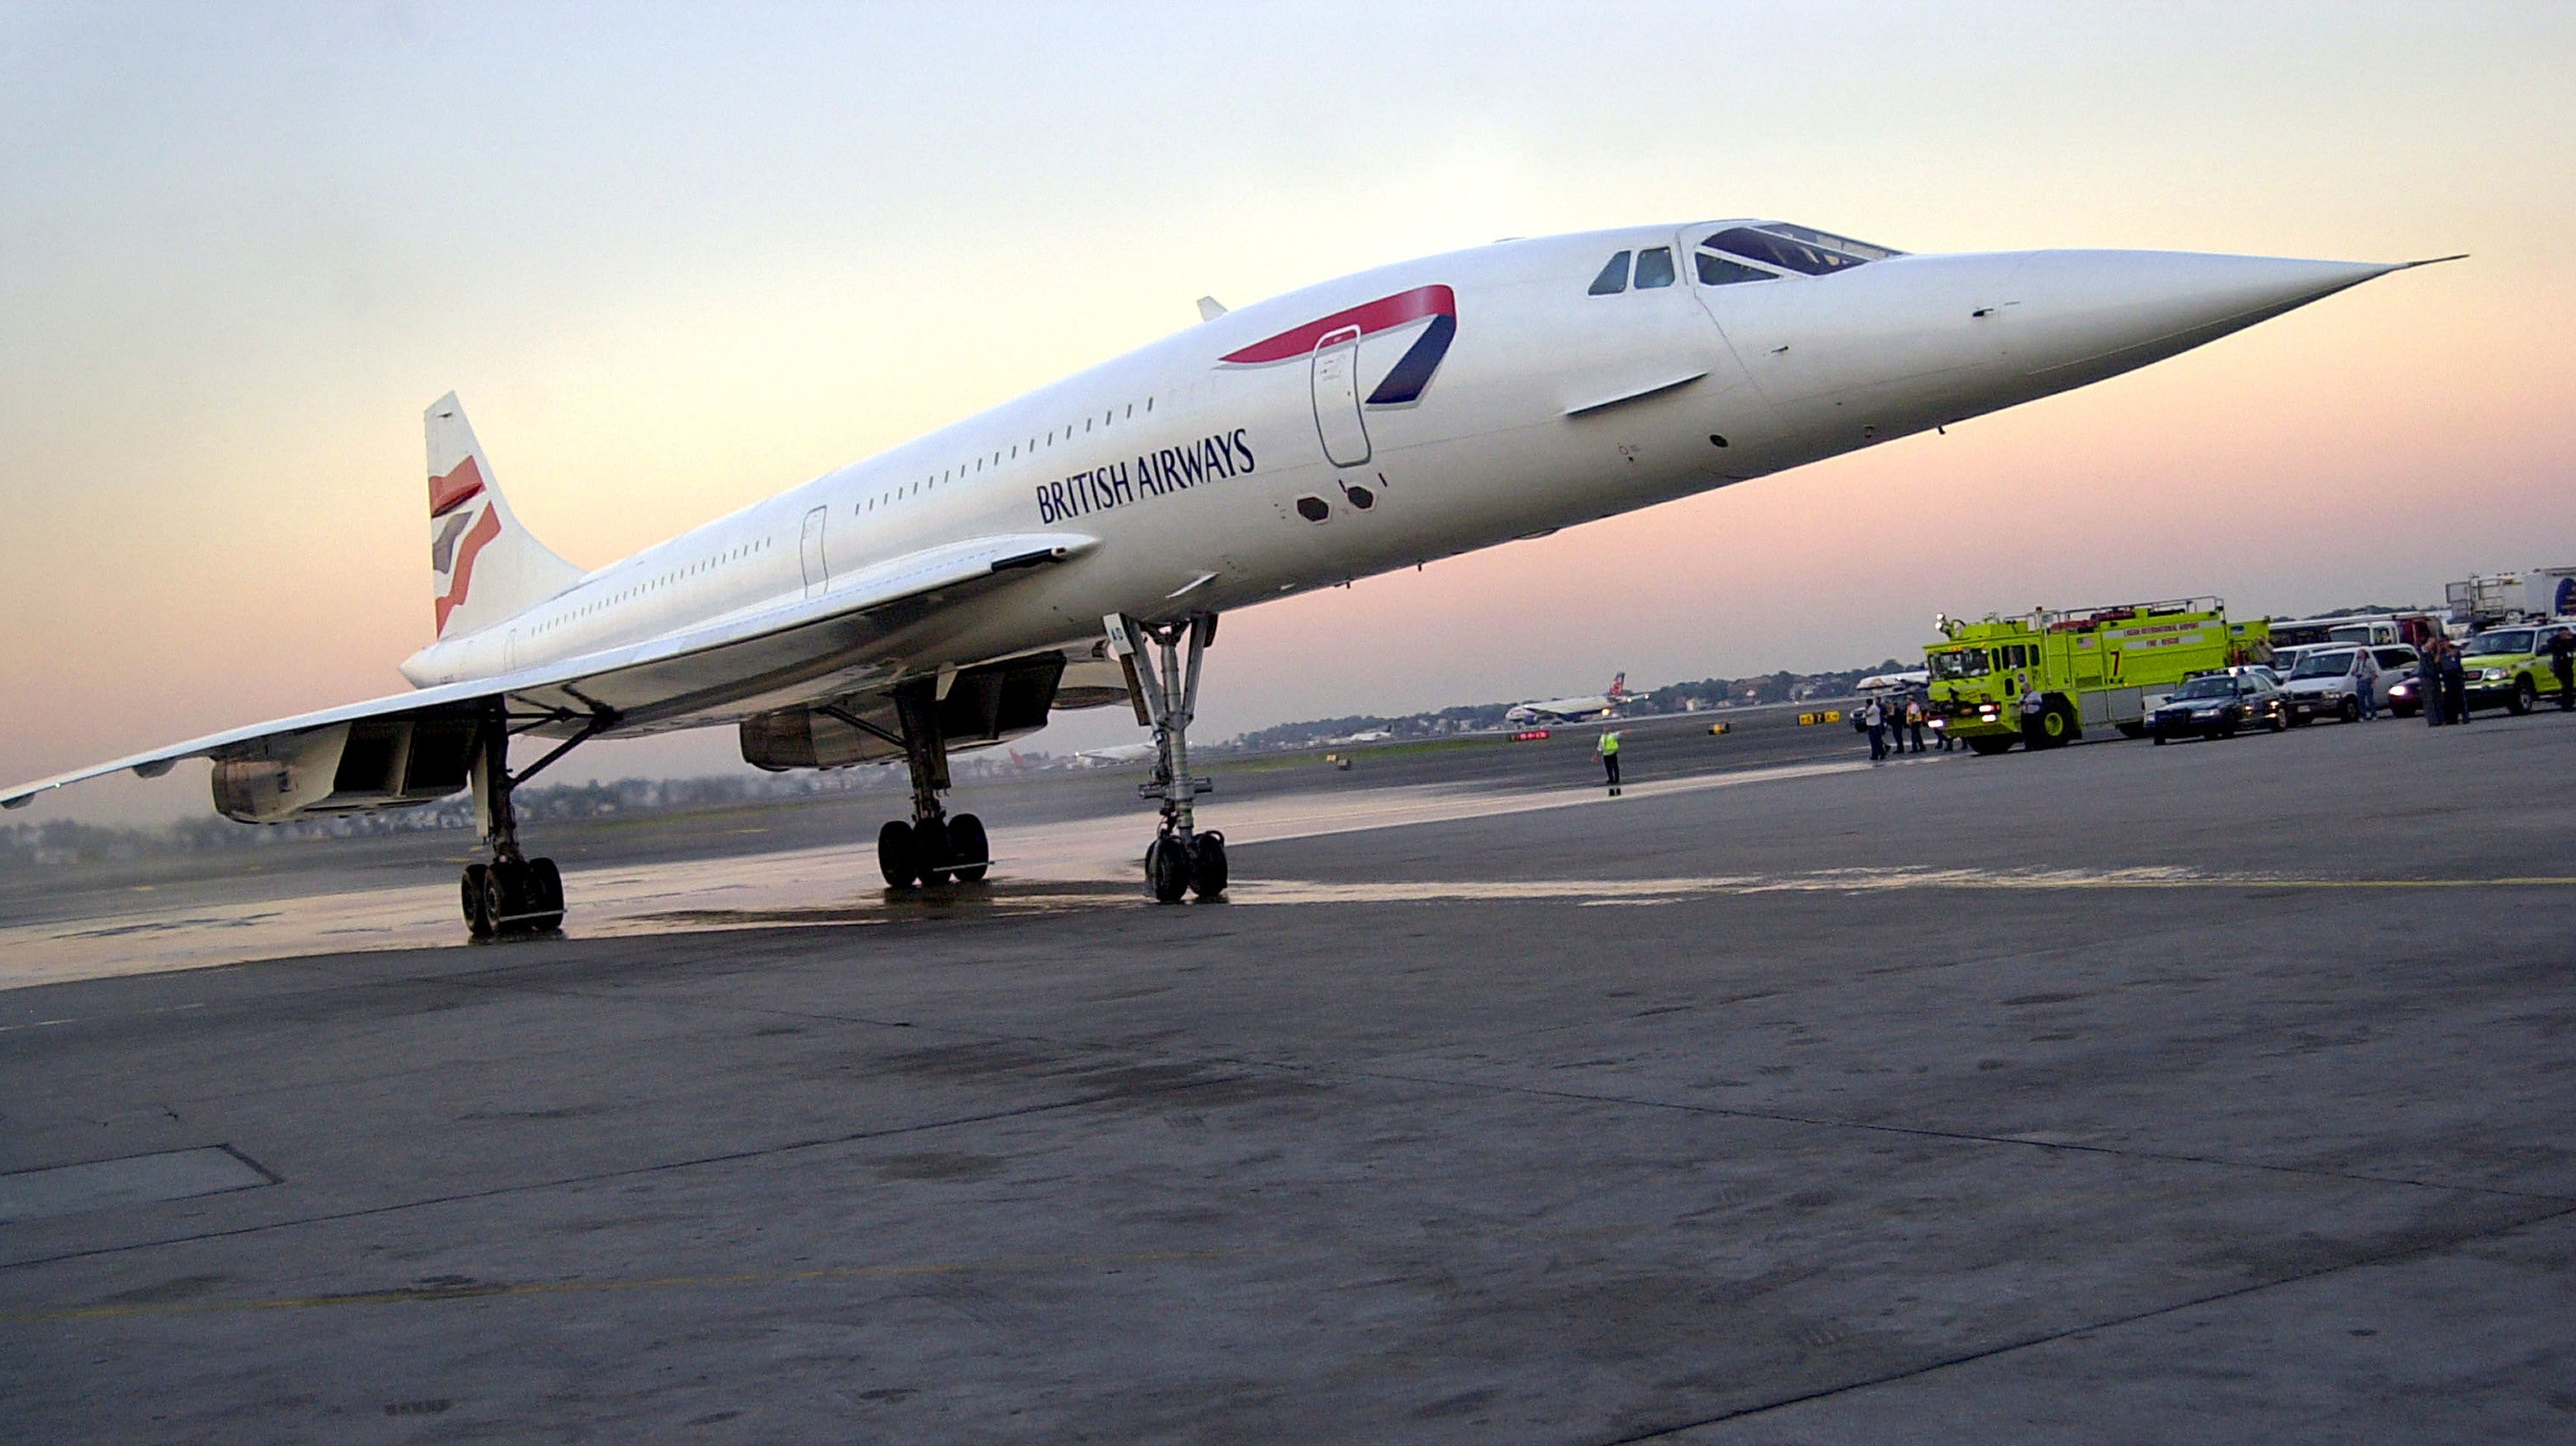 This Is What The Sonic Boom From The Concorde Sounded Like